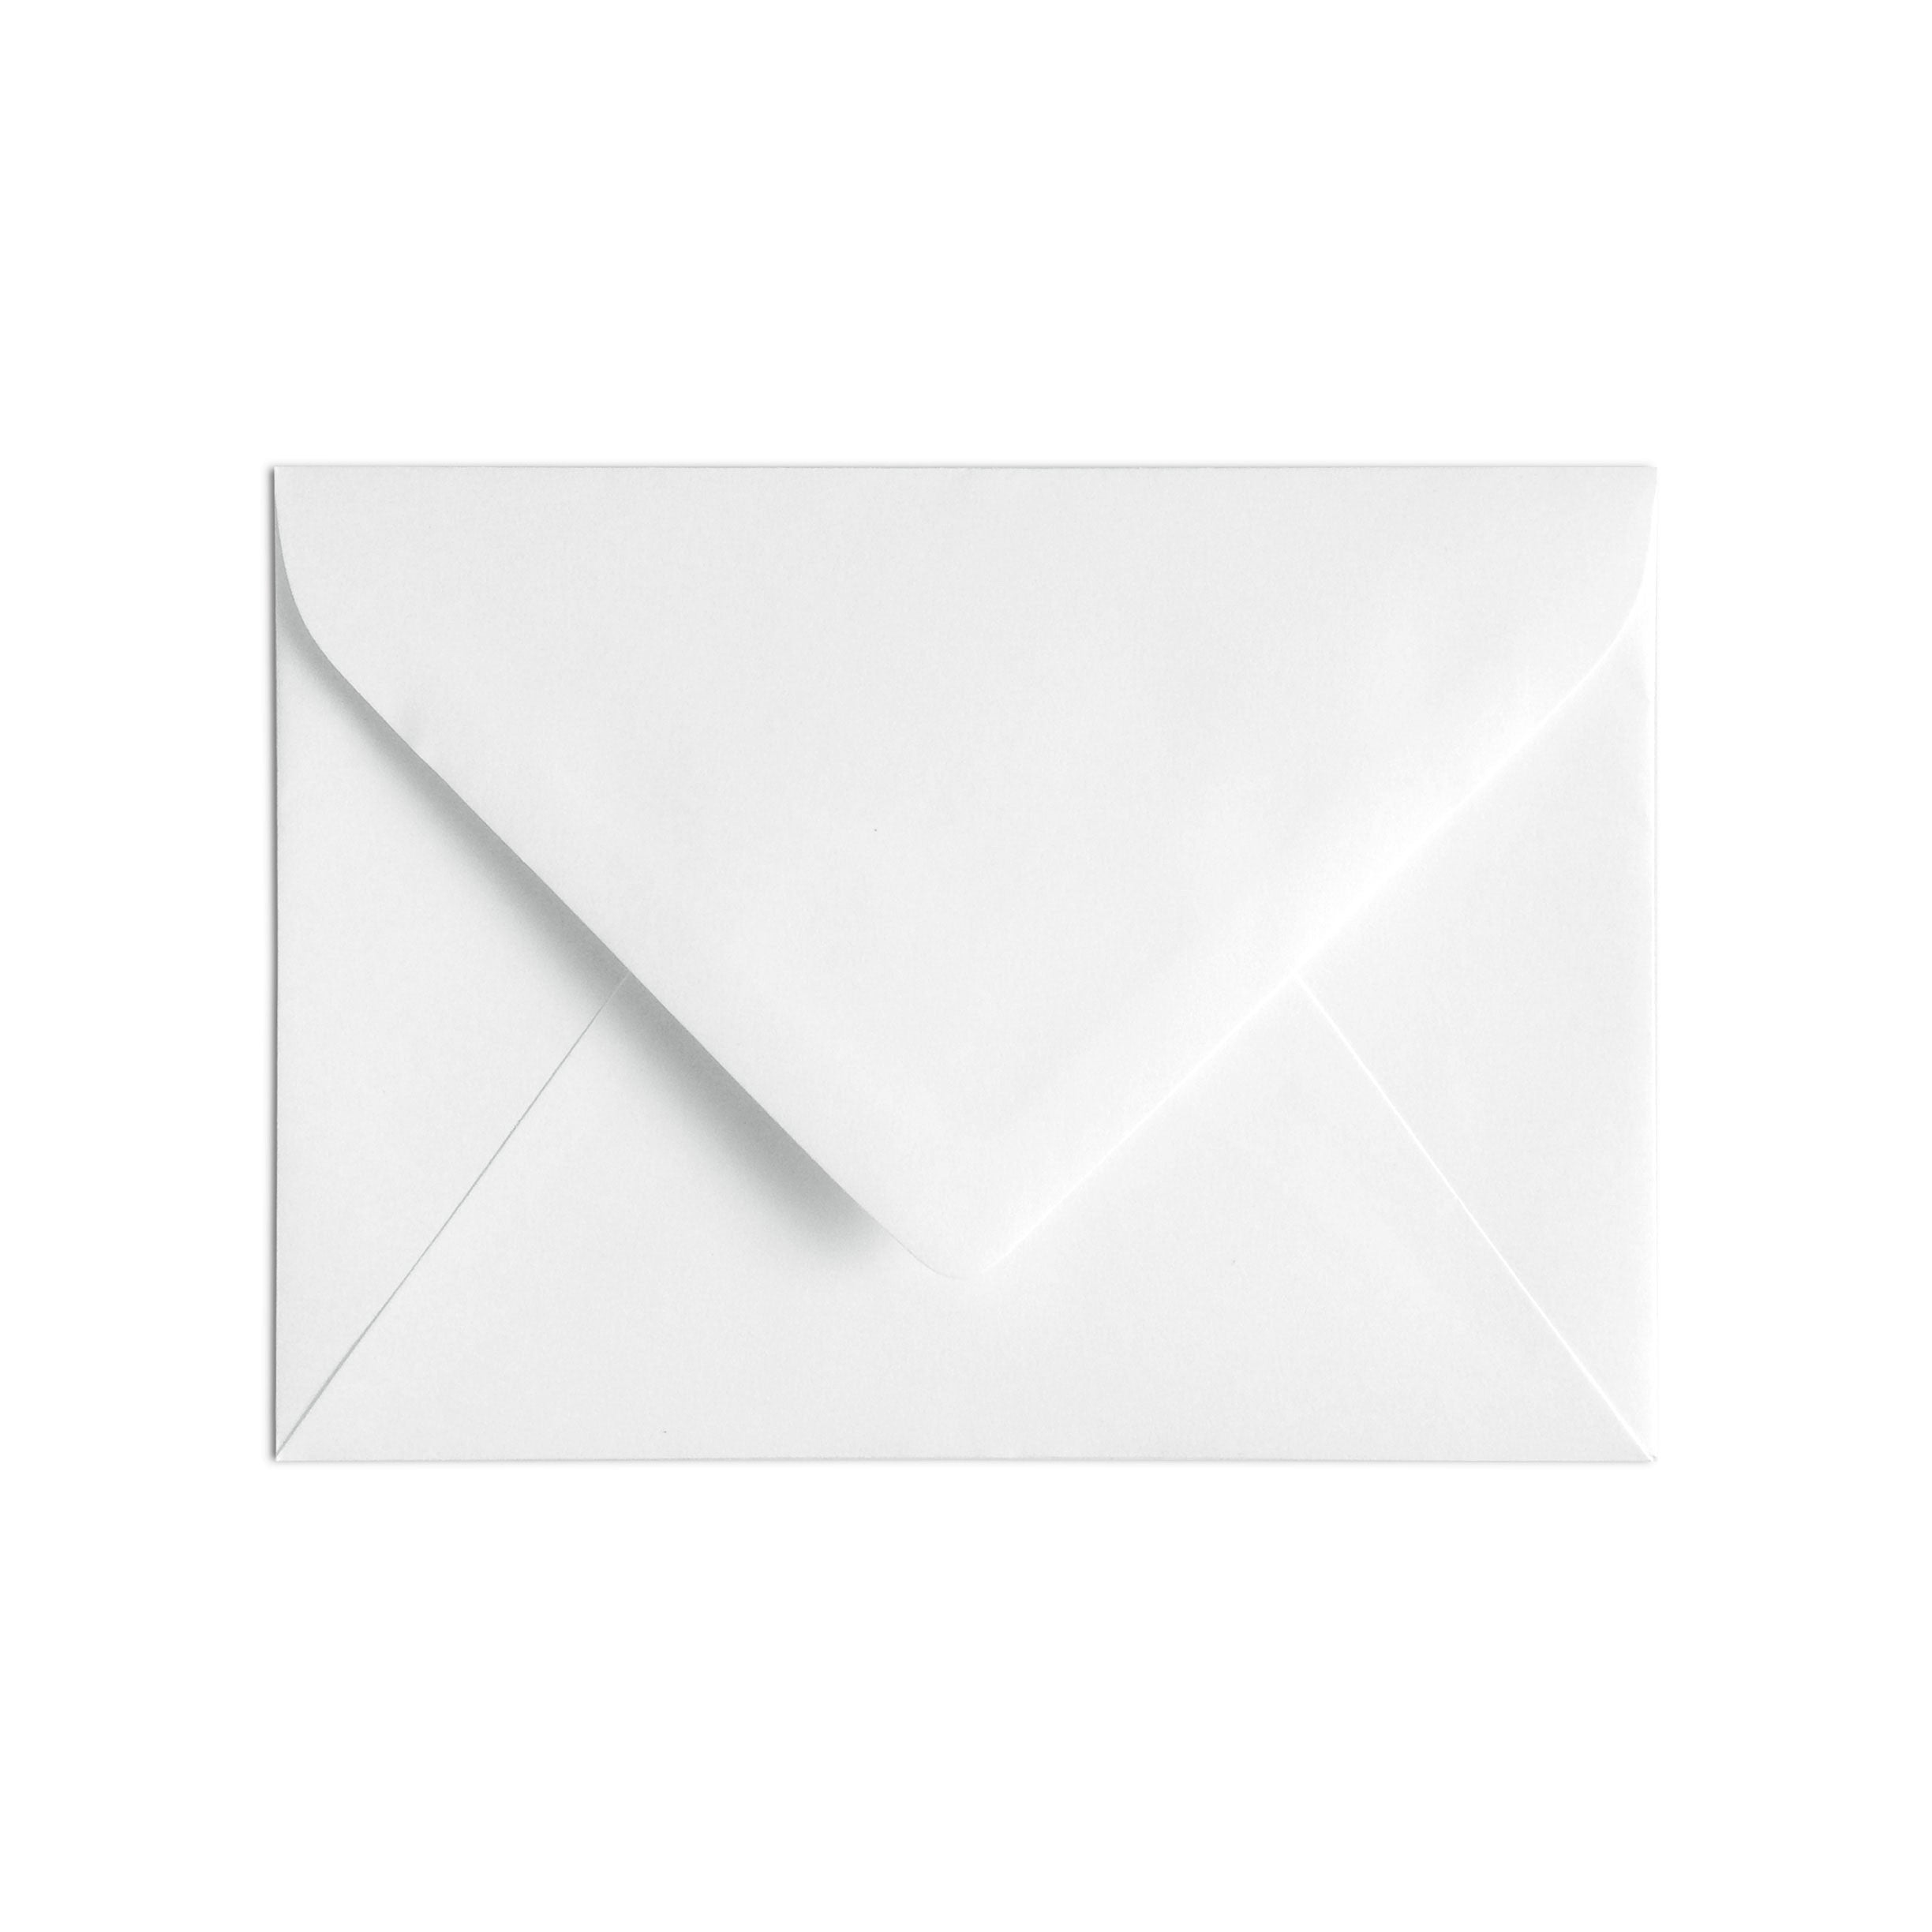 A7 Envelope White